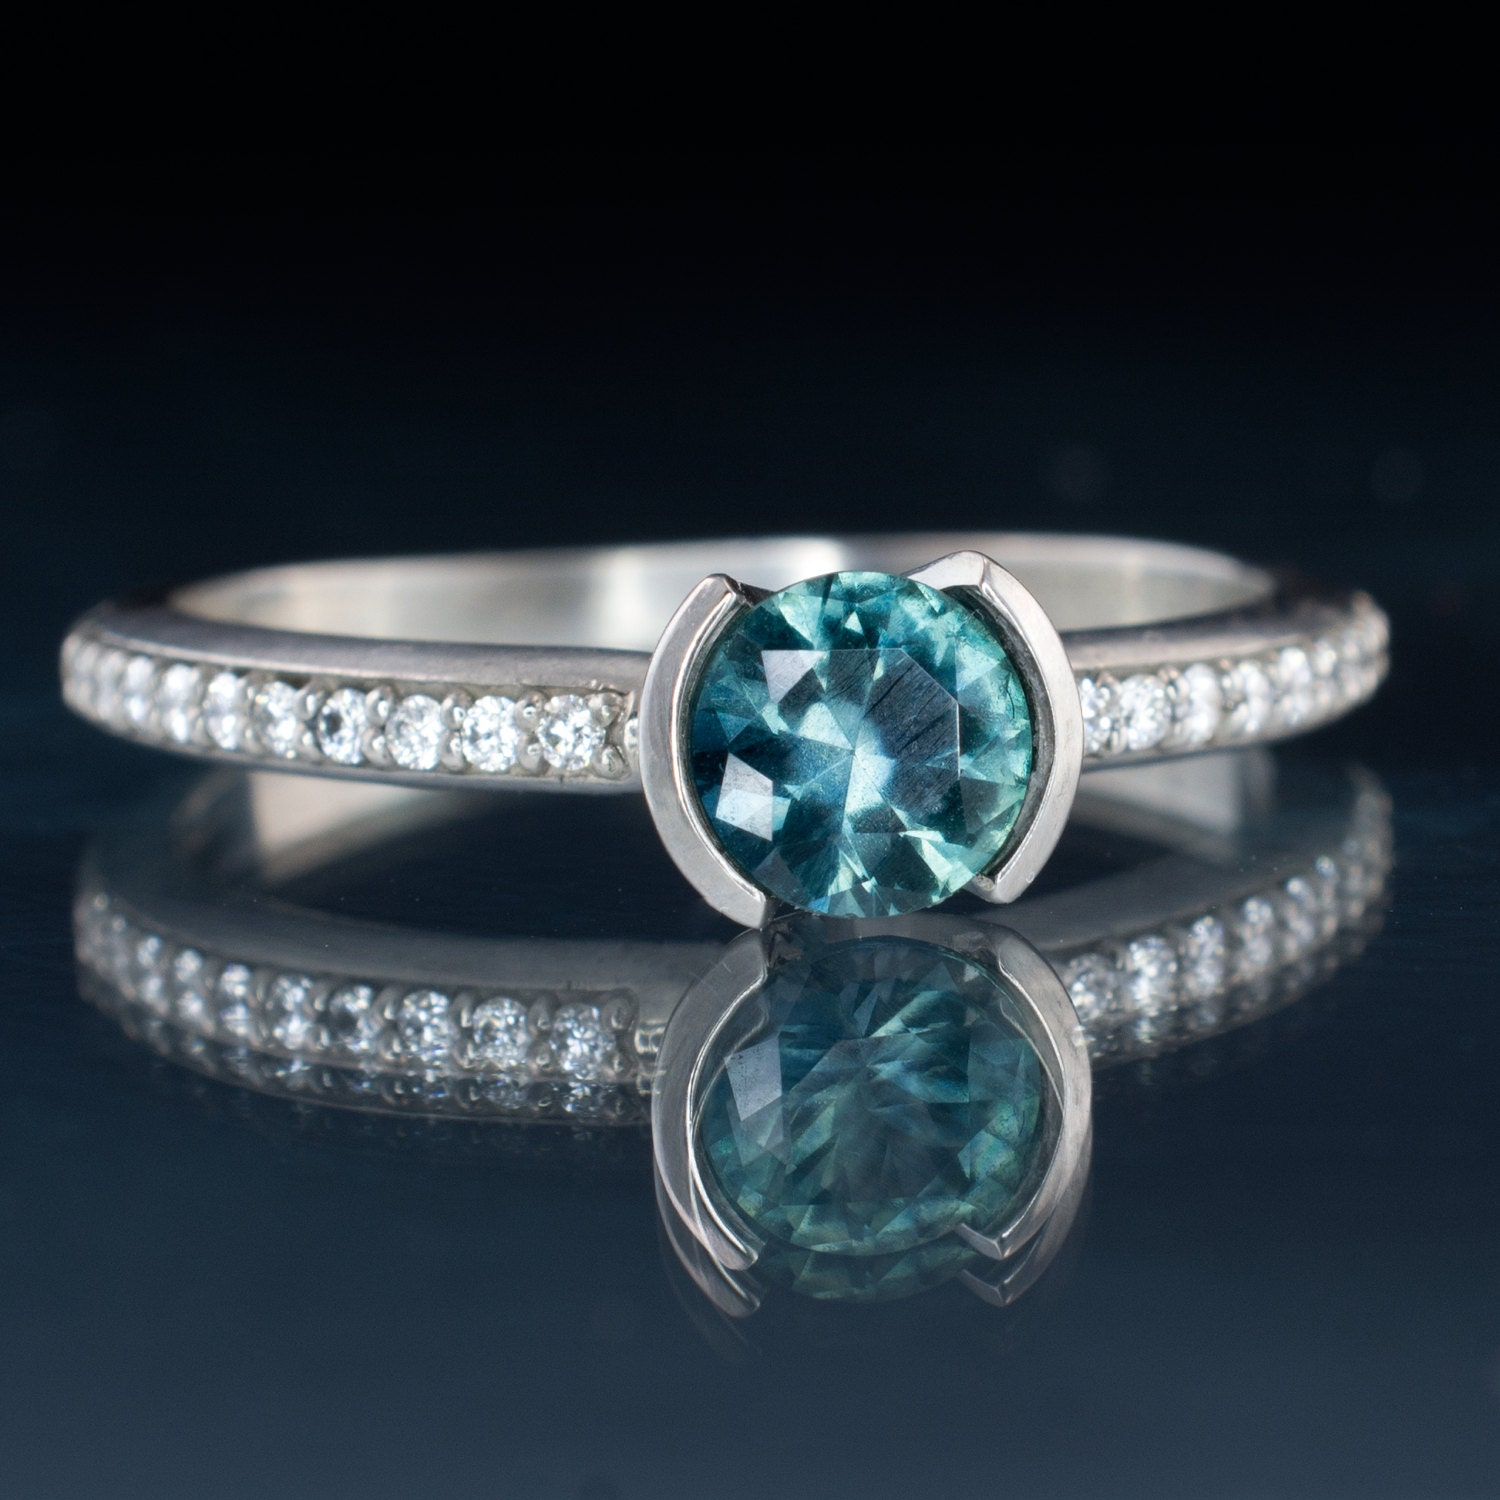 Teal Montana Sapphire Engagement Ring narrow by NodeformWeddings